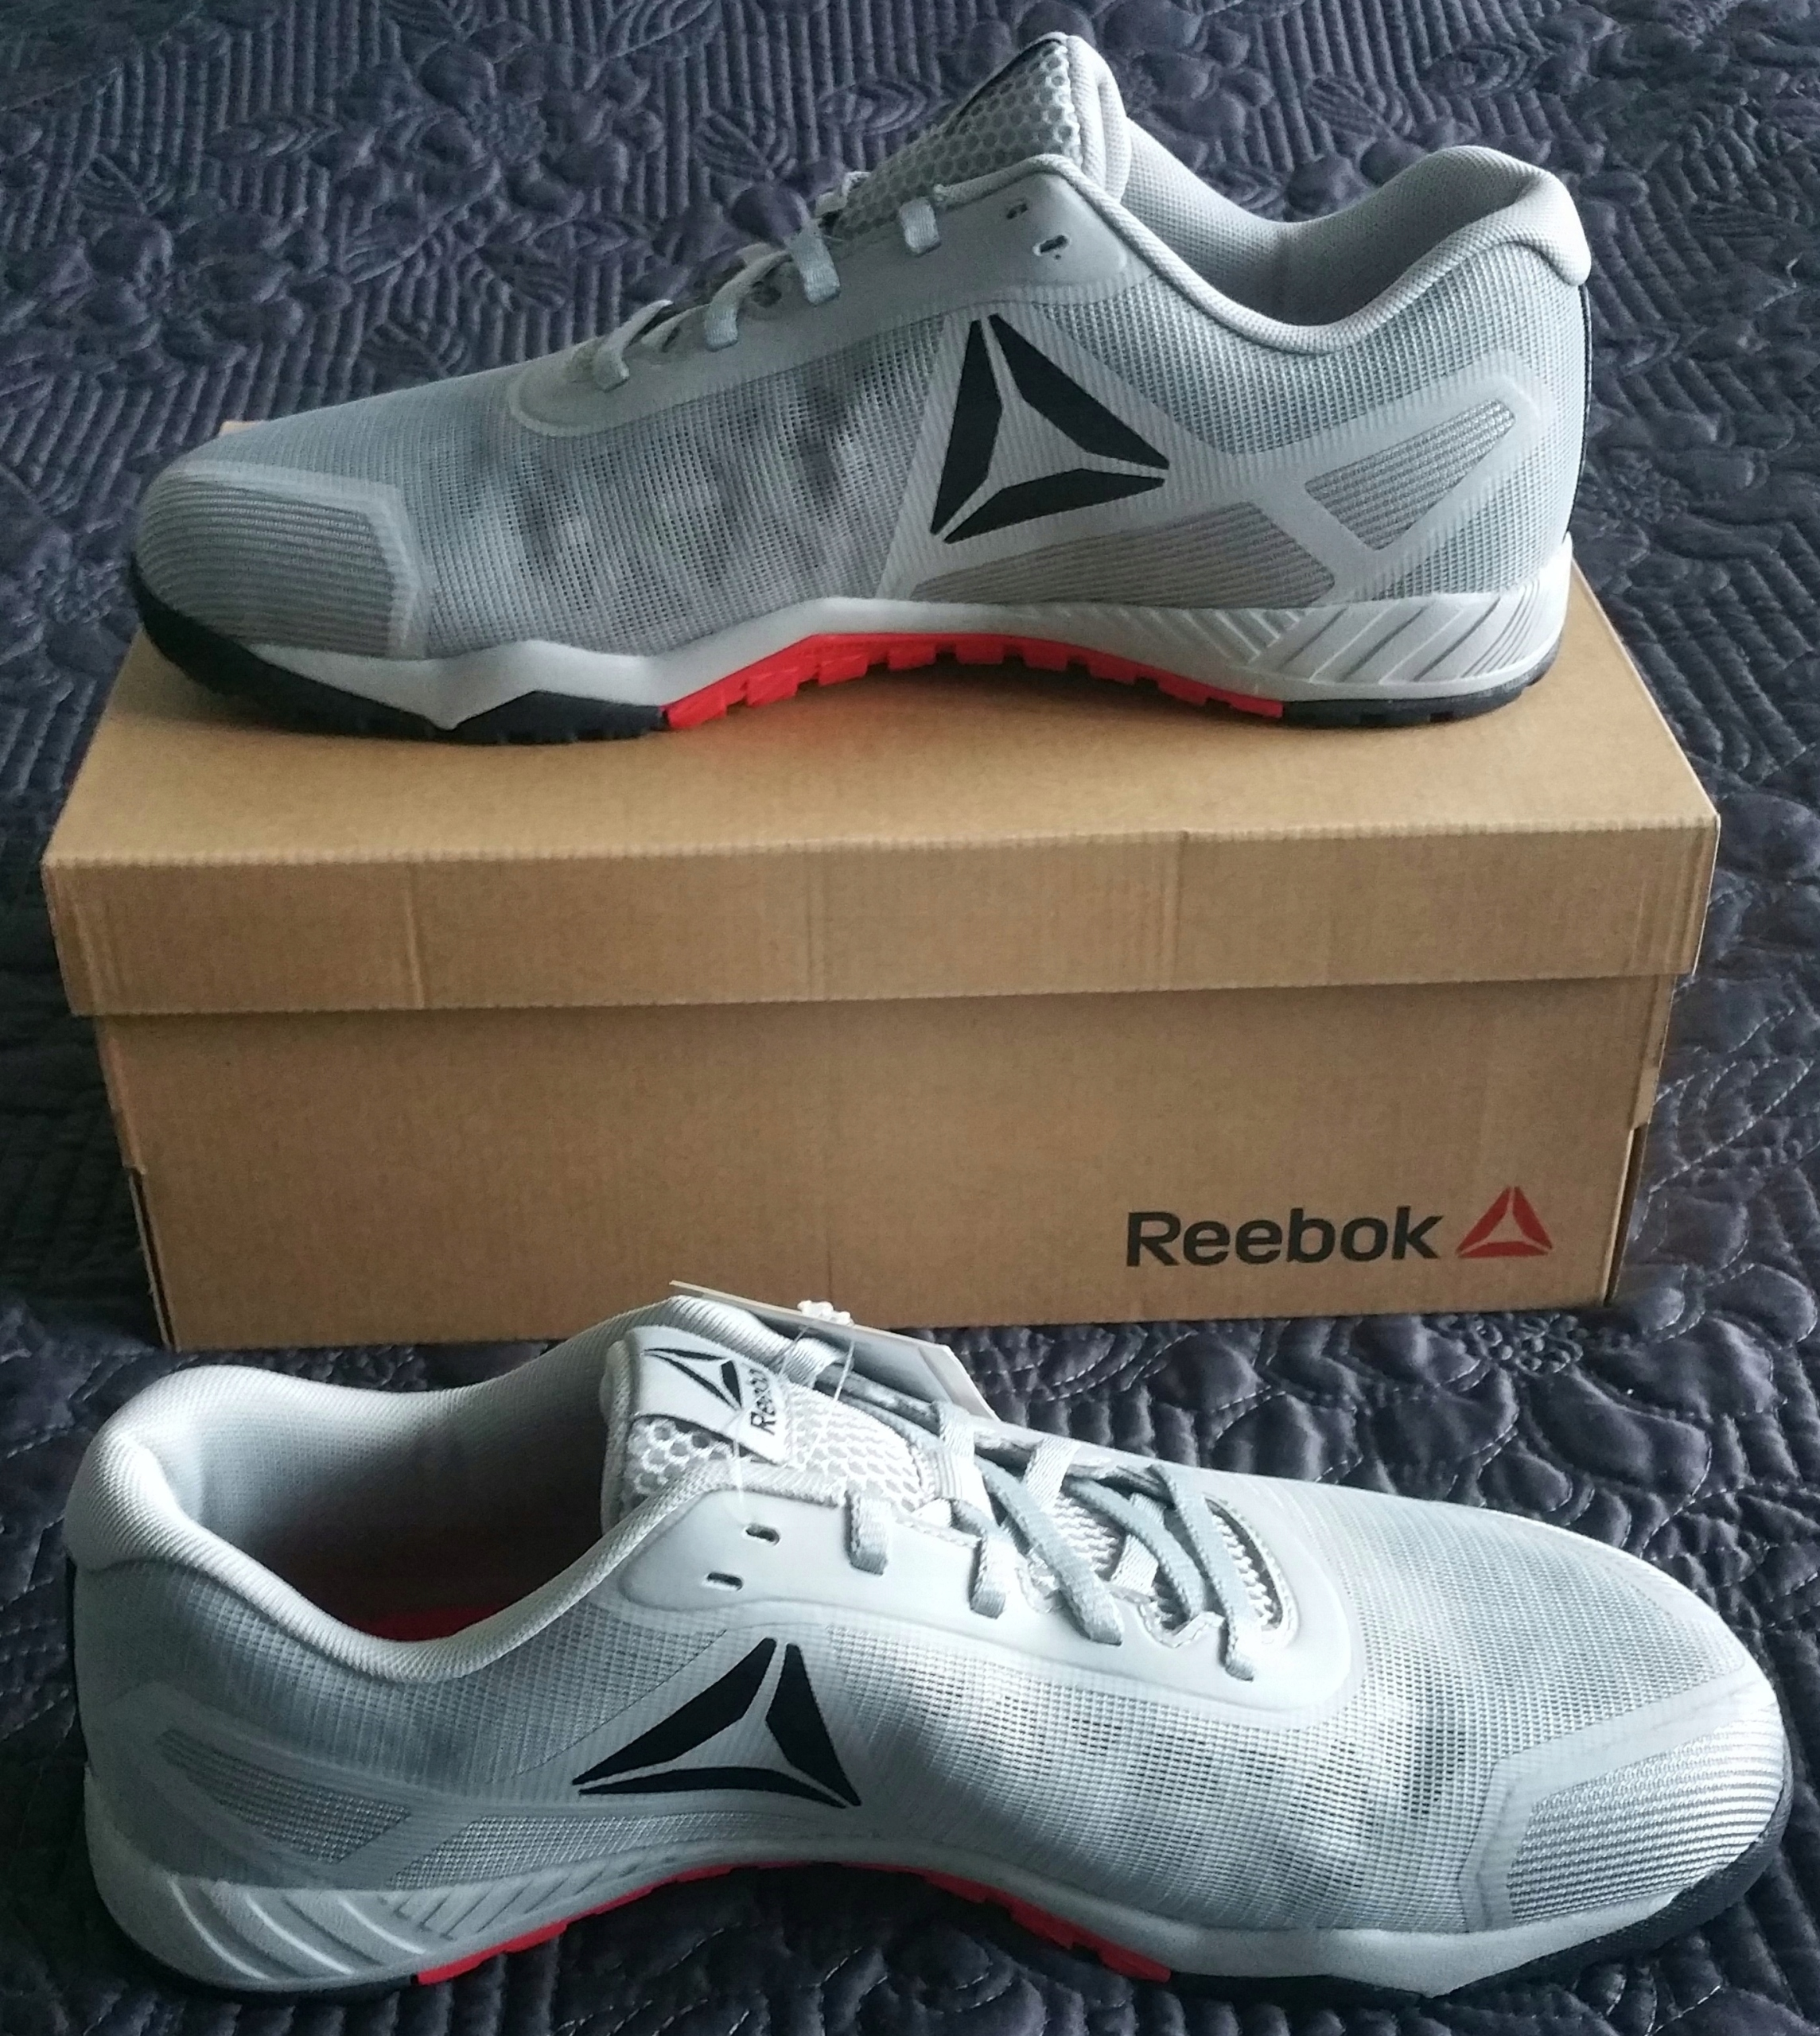 ad9771829ca1 REEBOK buty ROS Workout TR 2.0 44